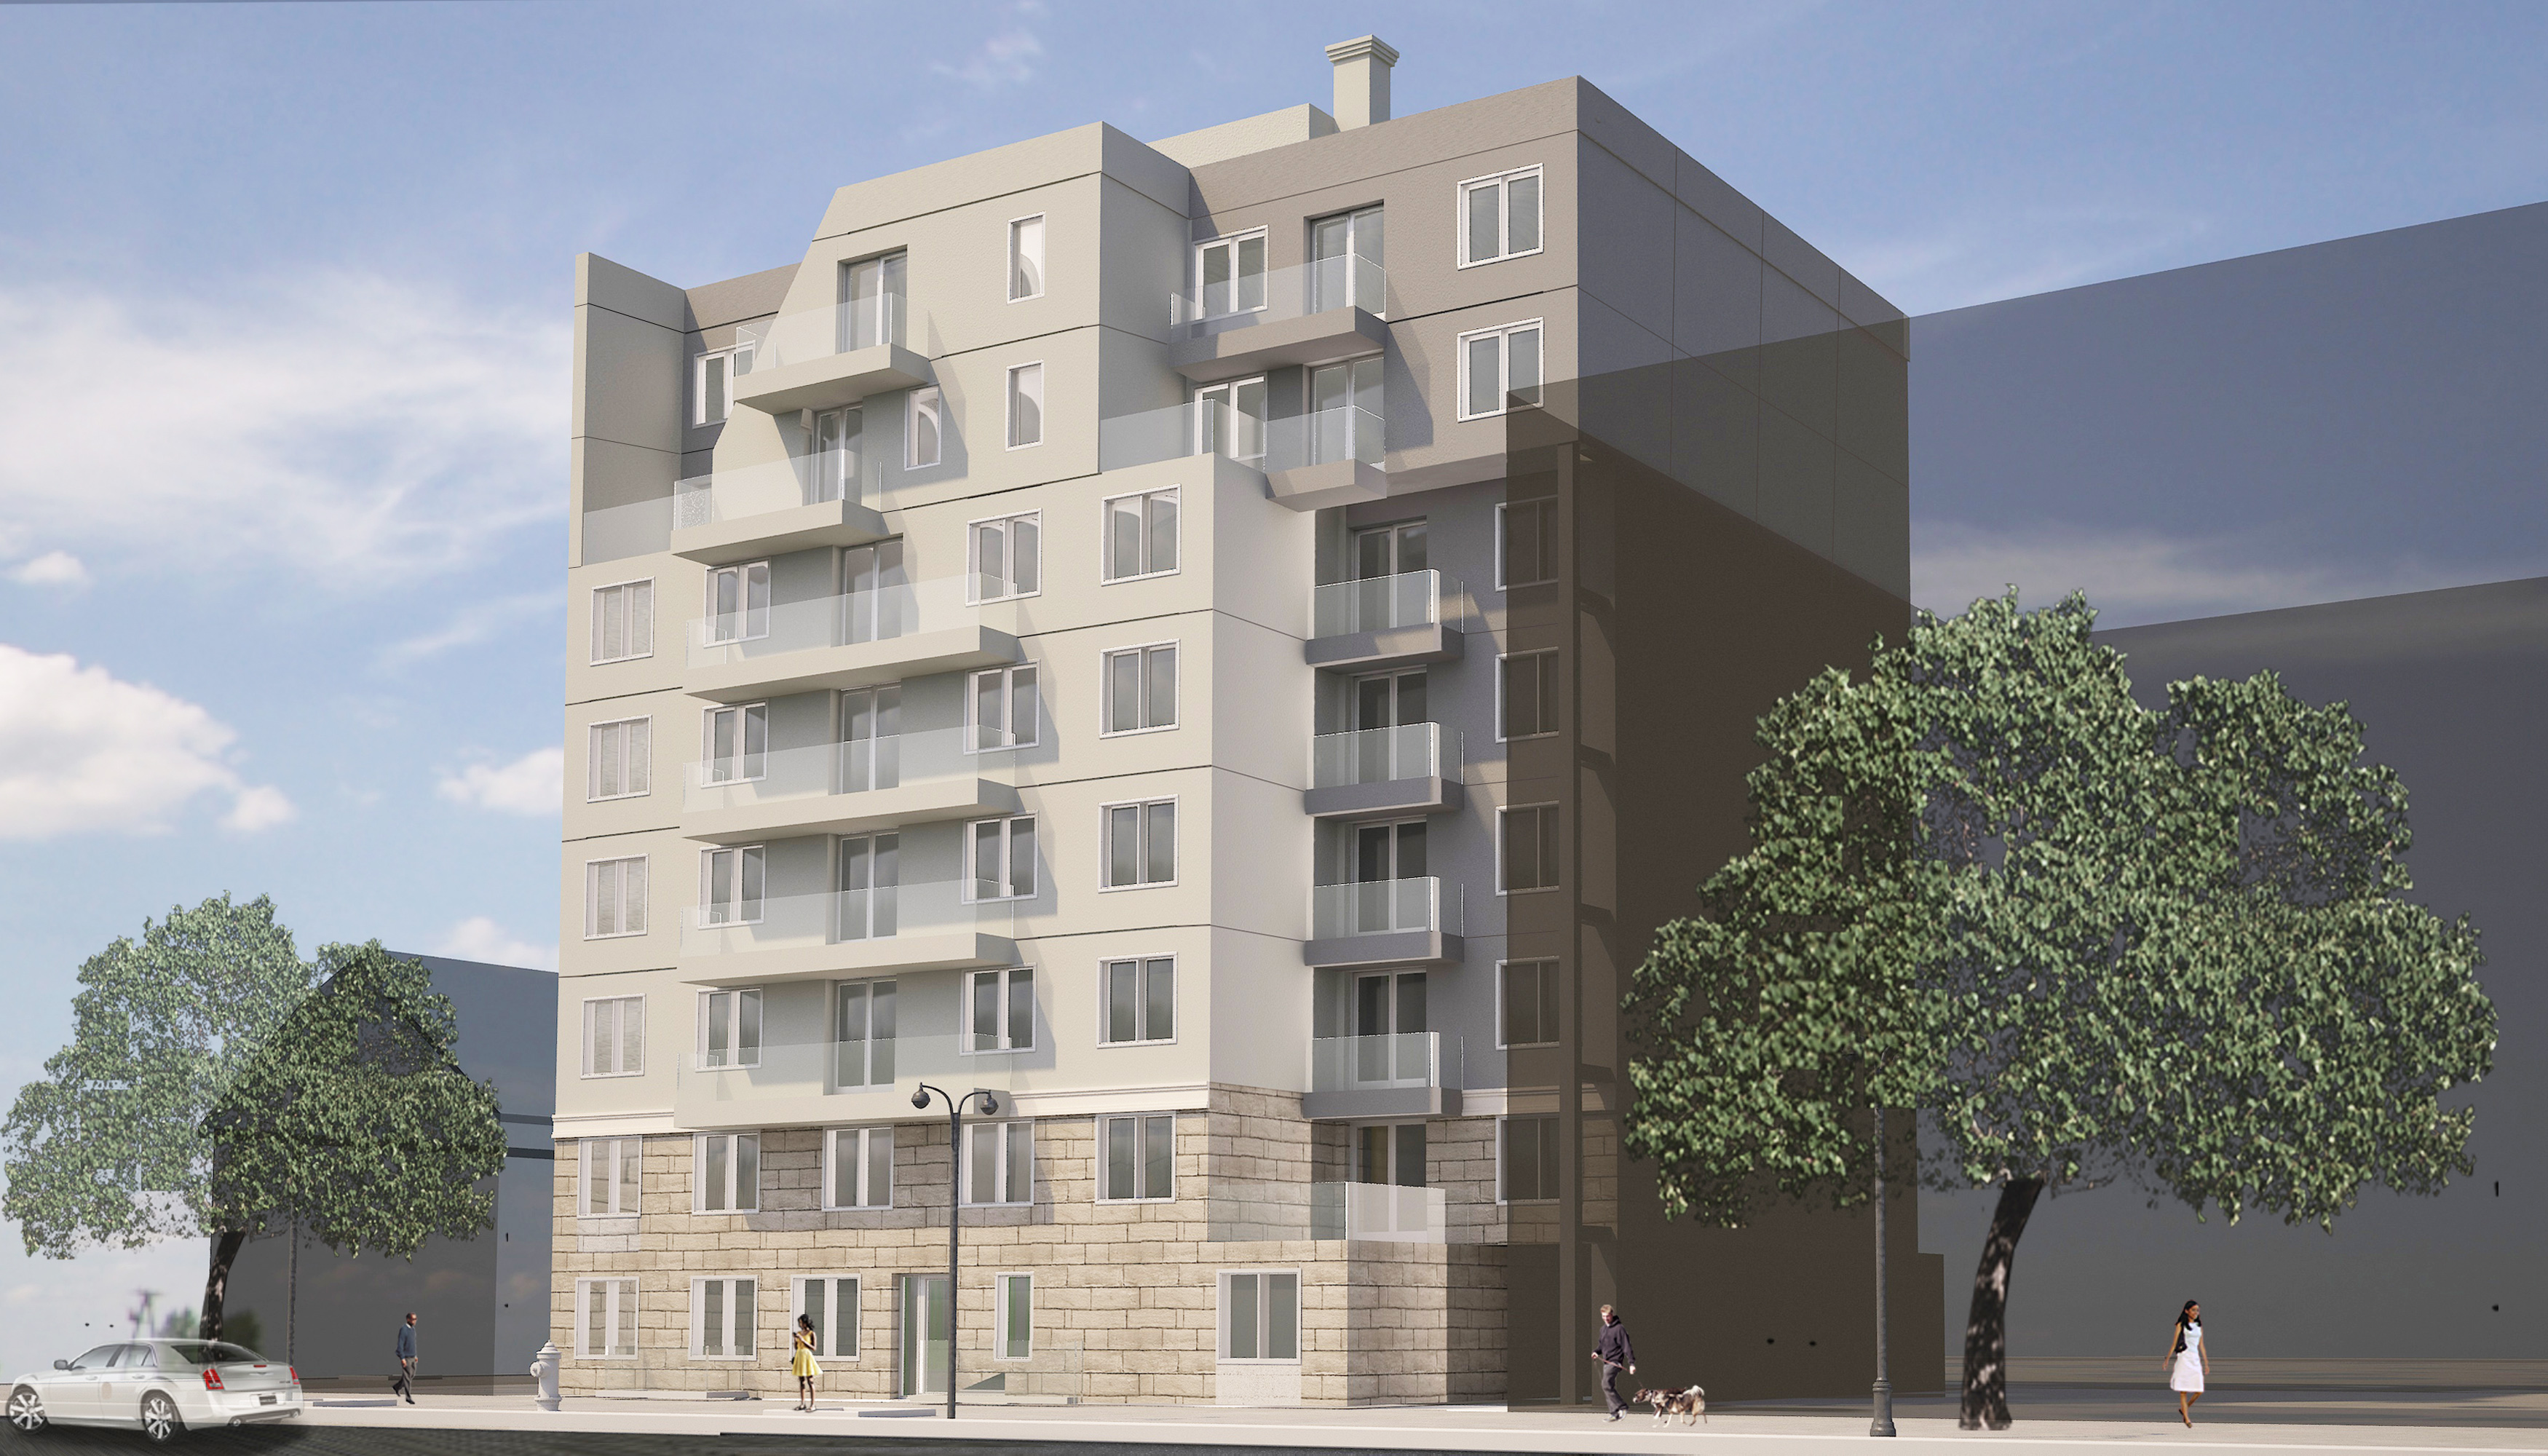 168 Avenue P, rendering by Chi F. Lau Architect